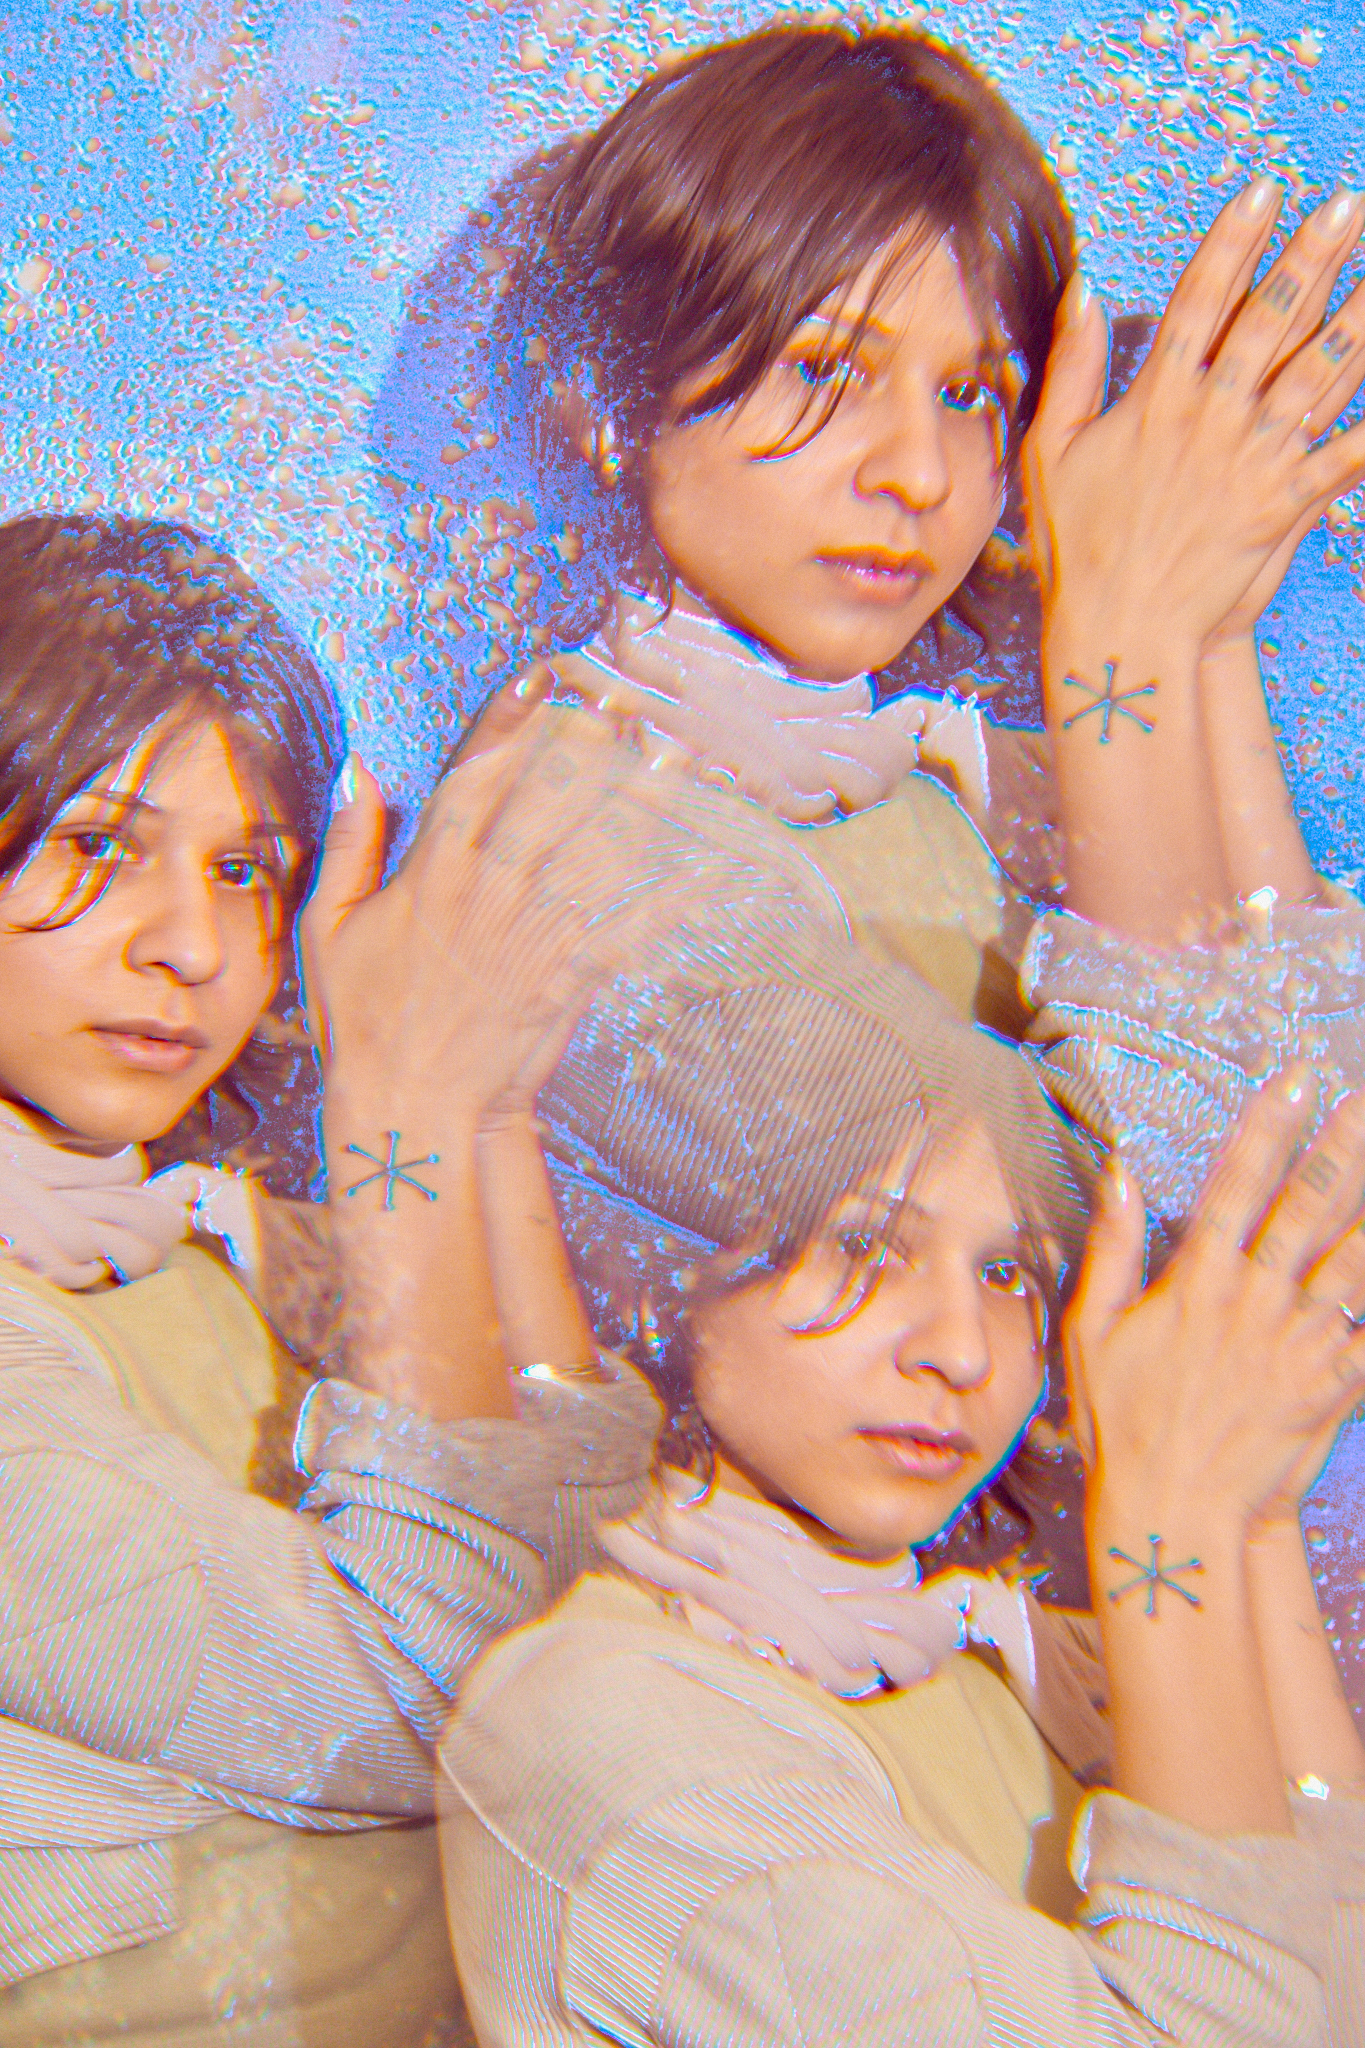 Image: Marissa Macias faces the camera with her hands together towards her head. Three images of Marissa are arranged like a kaleidoscope on a silvery-blue background. Photo by Sarah Joyce.